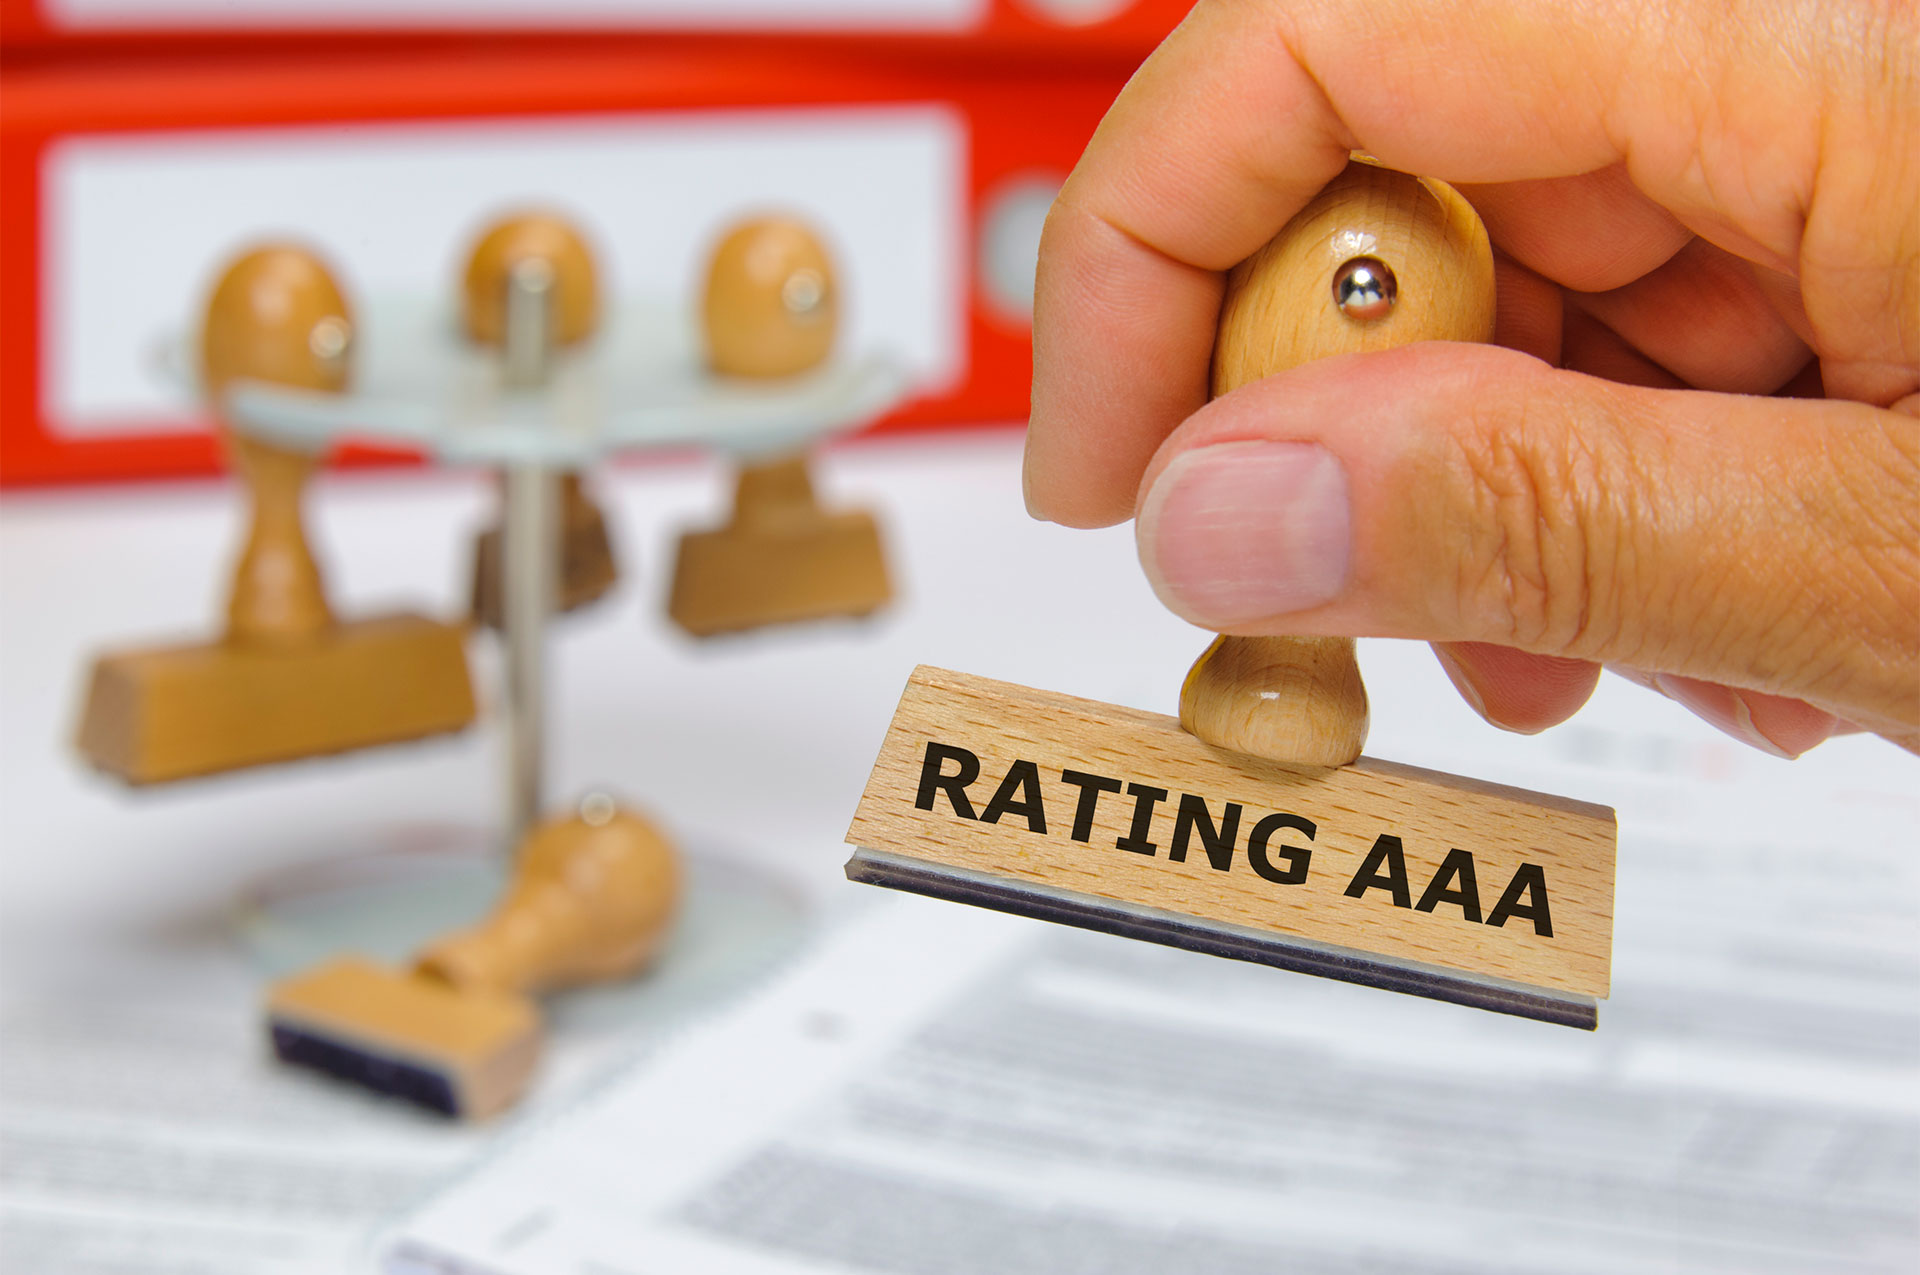 Finance AAA Rating